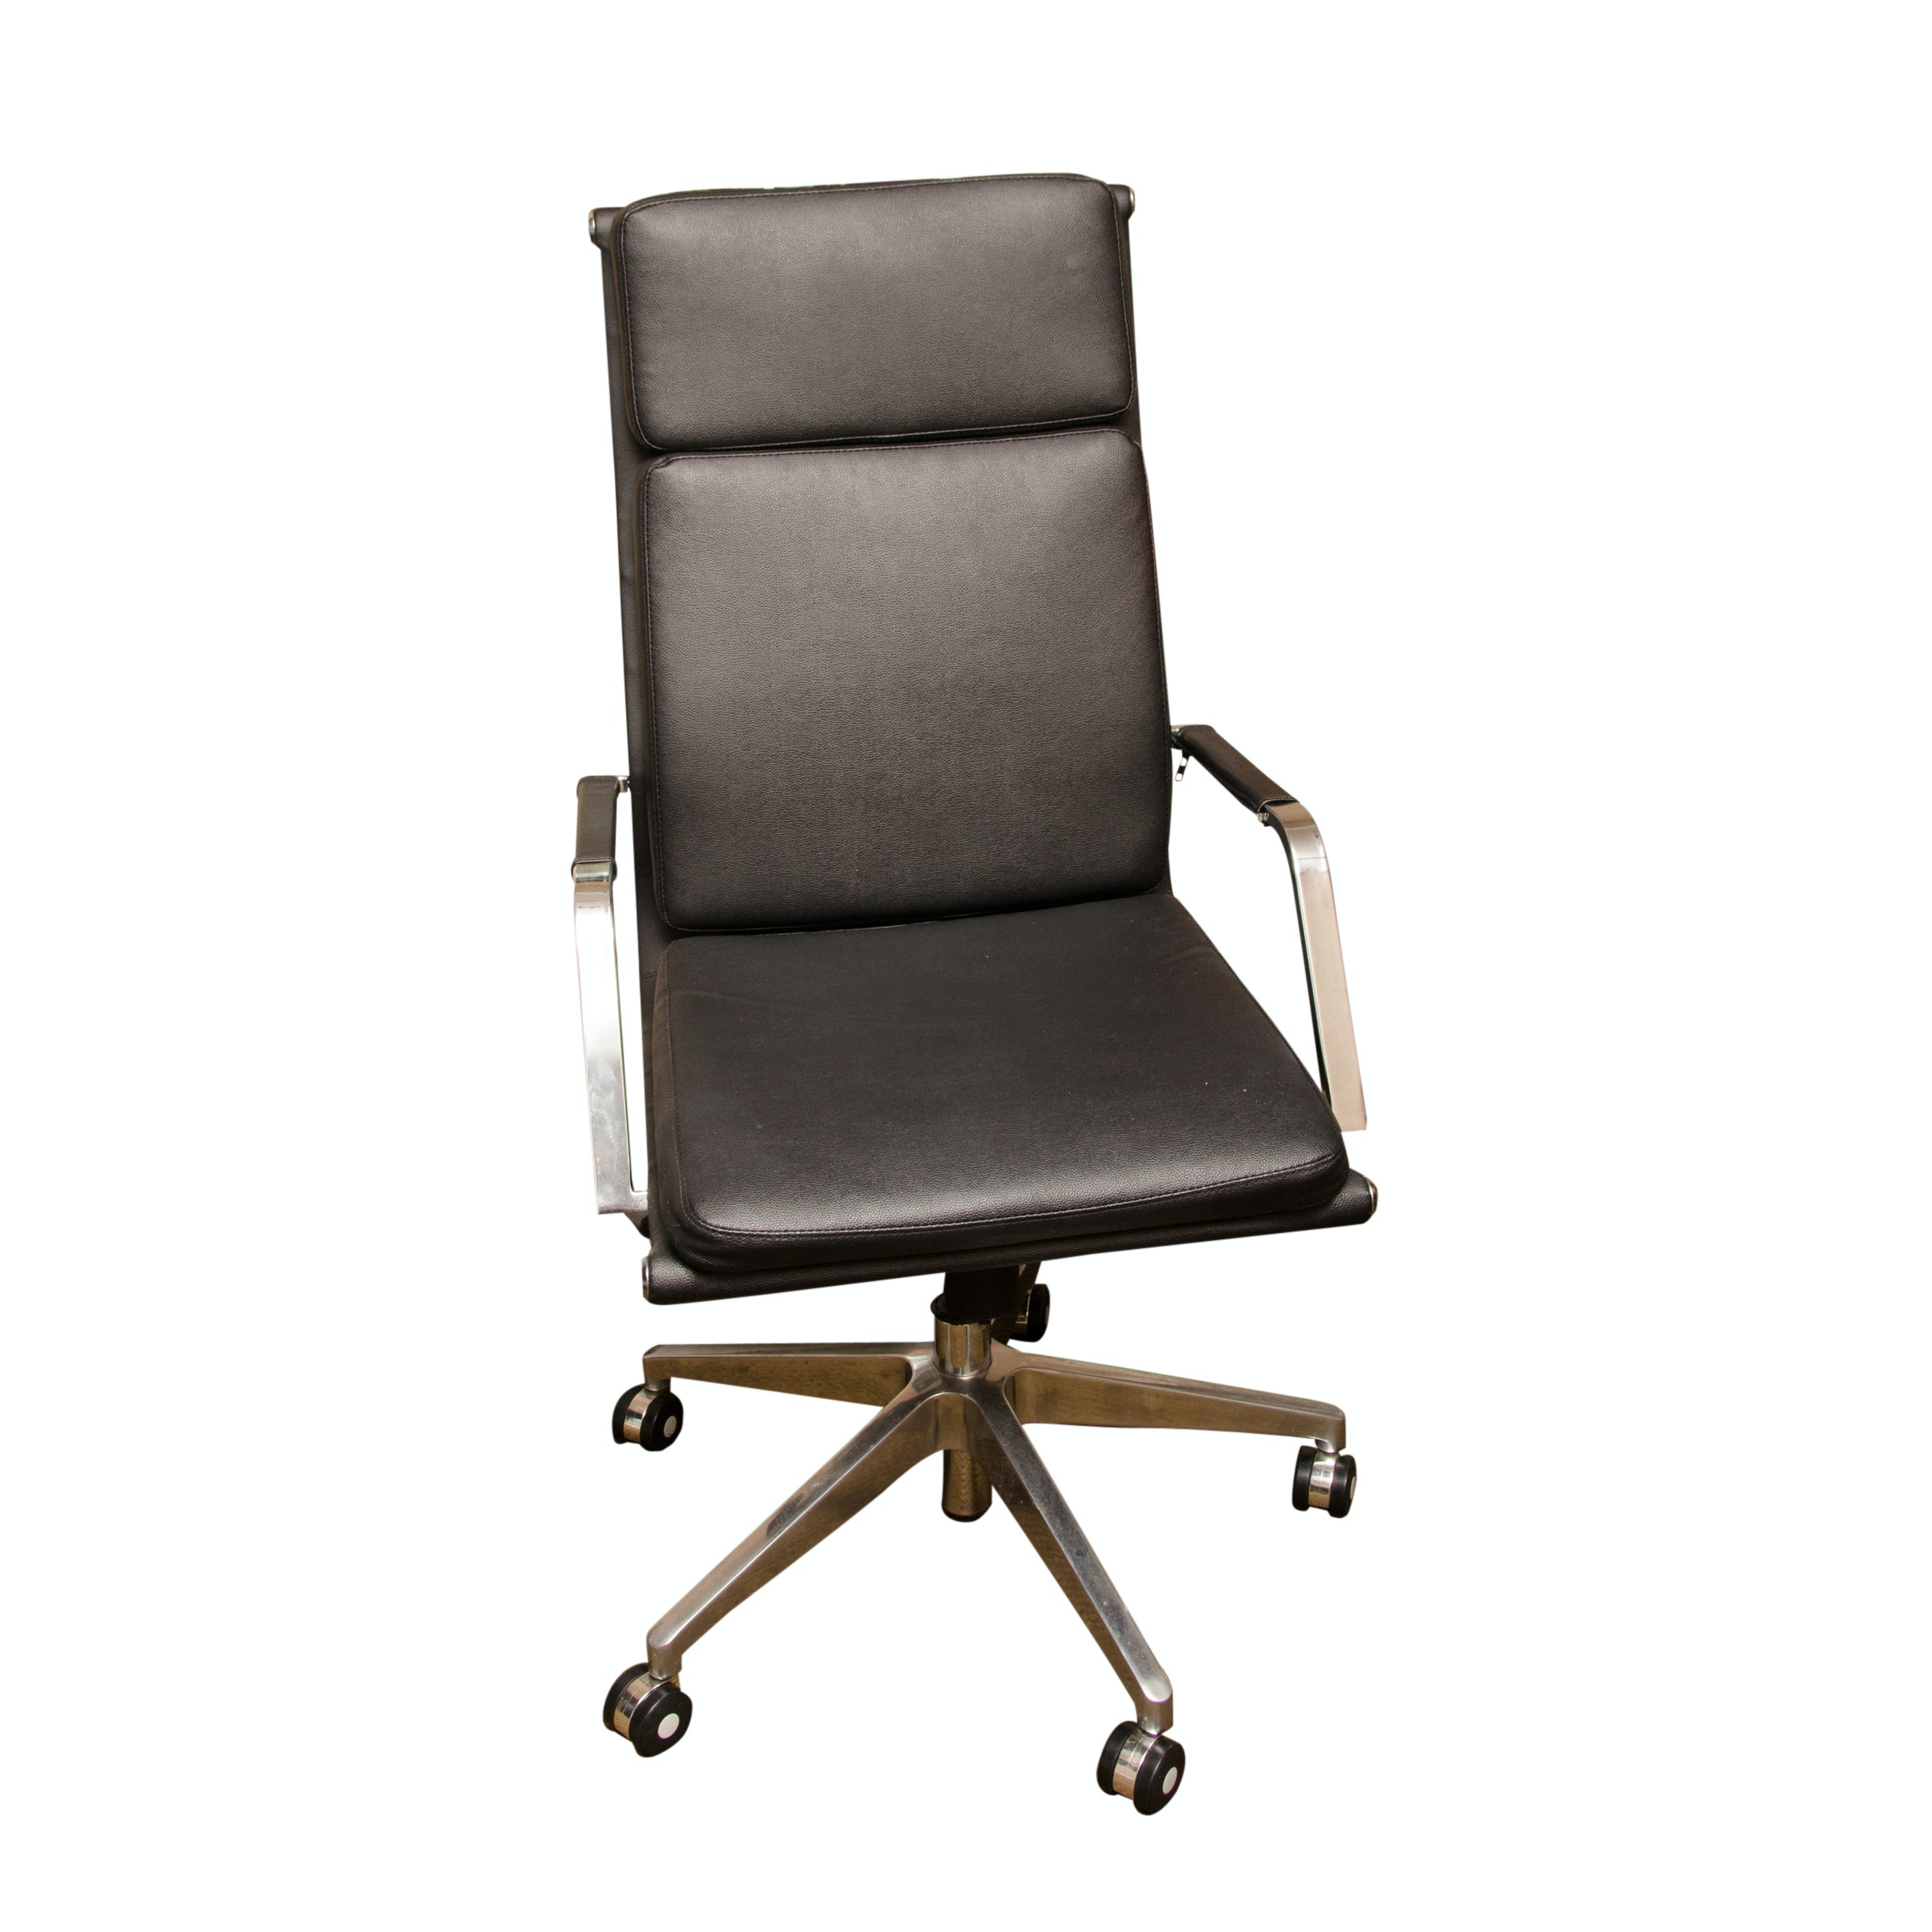 New Contemporary Faux Leather Rolling fice Chair by Jesper fice - Latest rolling office chair Modern